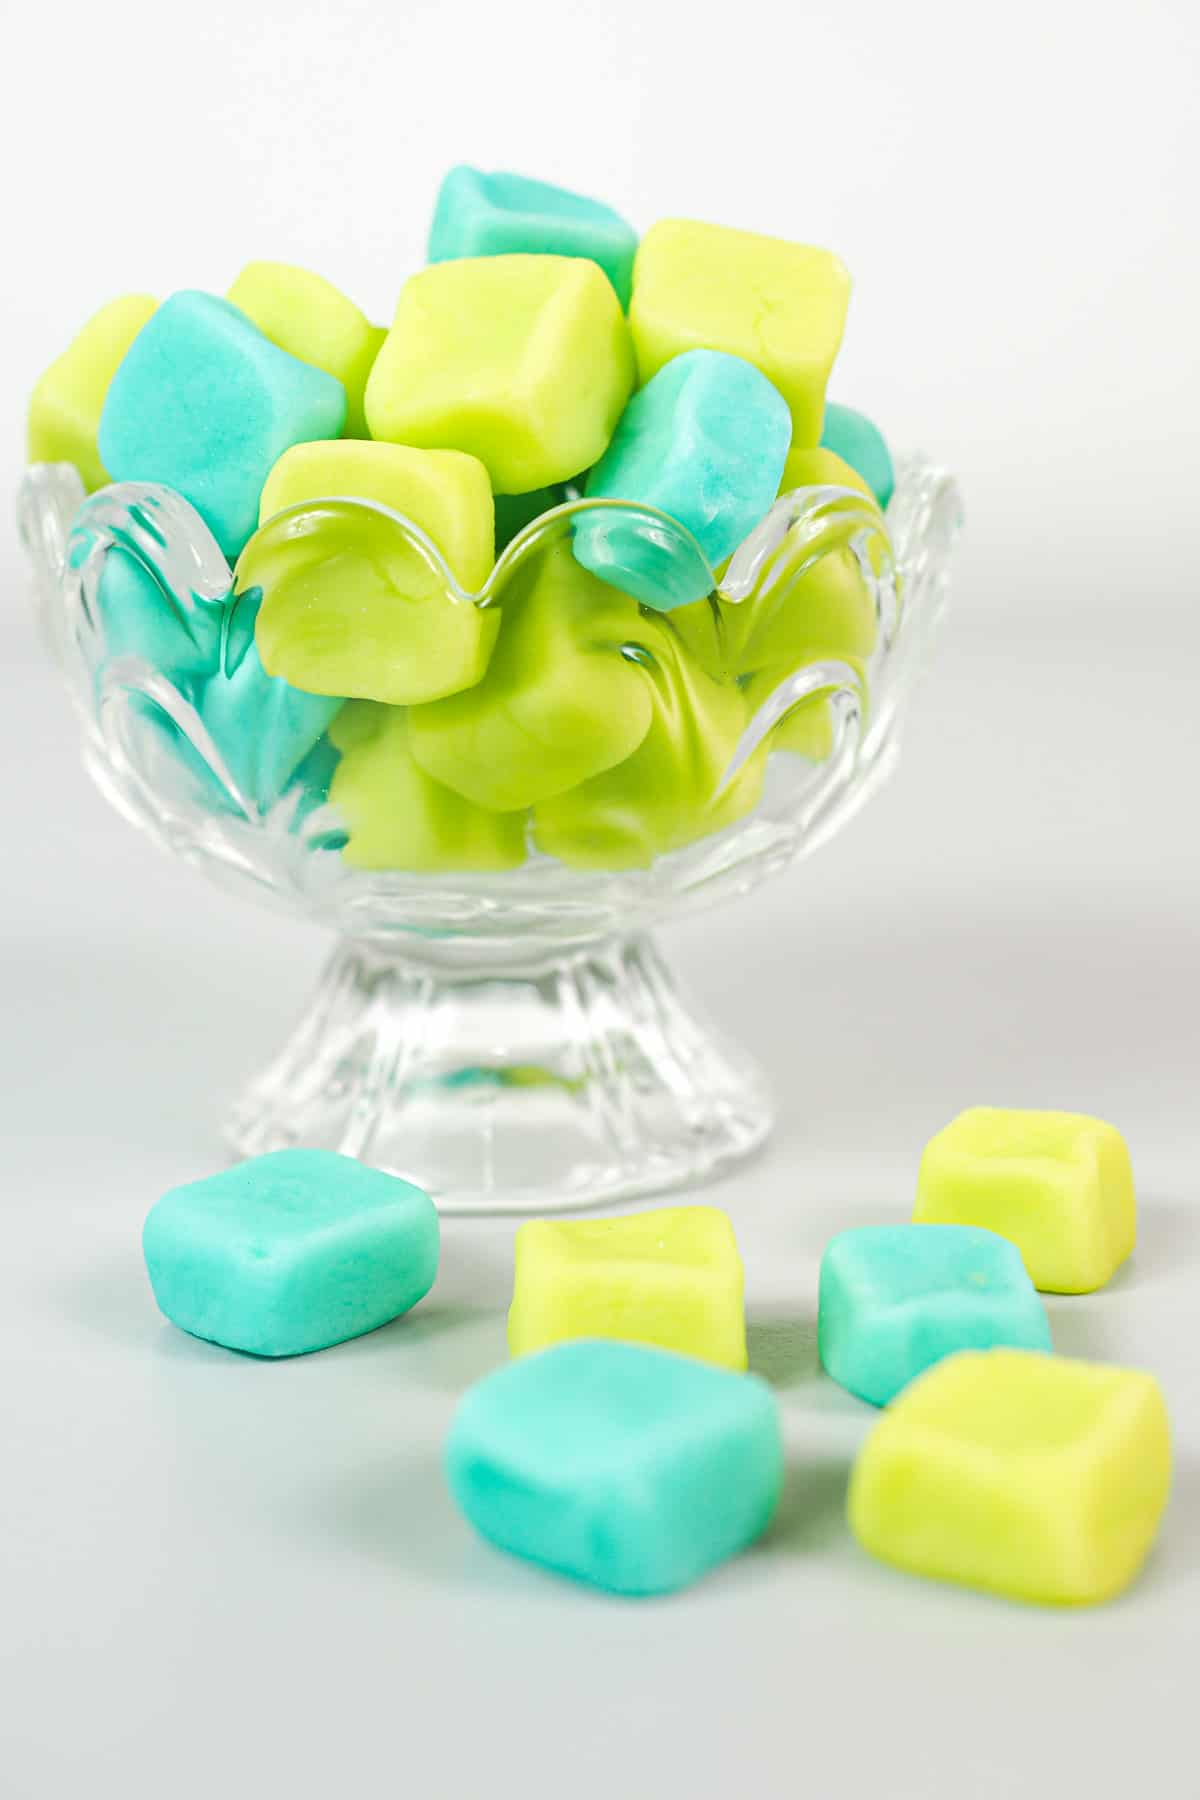 A glass jar of blue and green mints